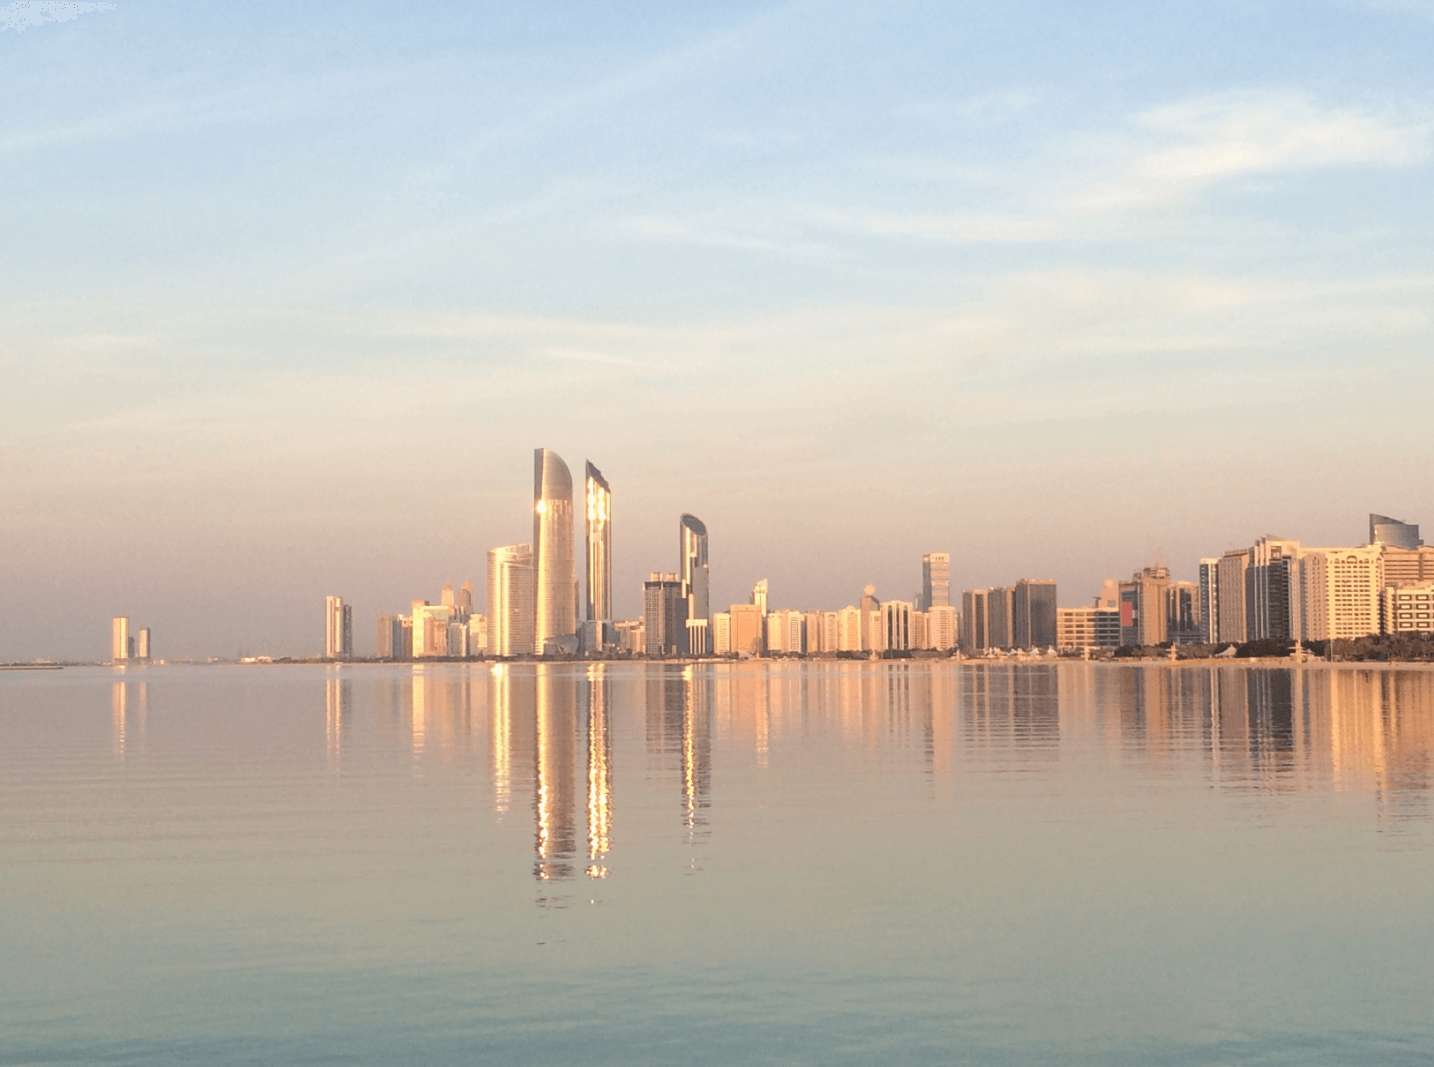 Obtaining an economic licence in Abu Dhabi